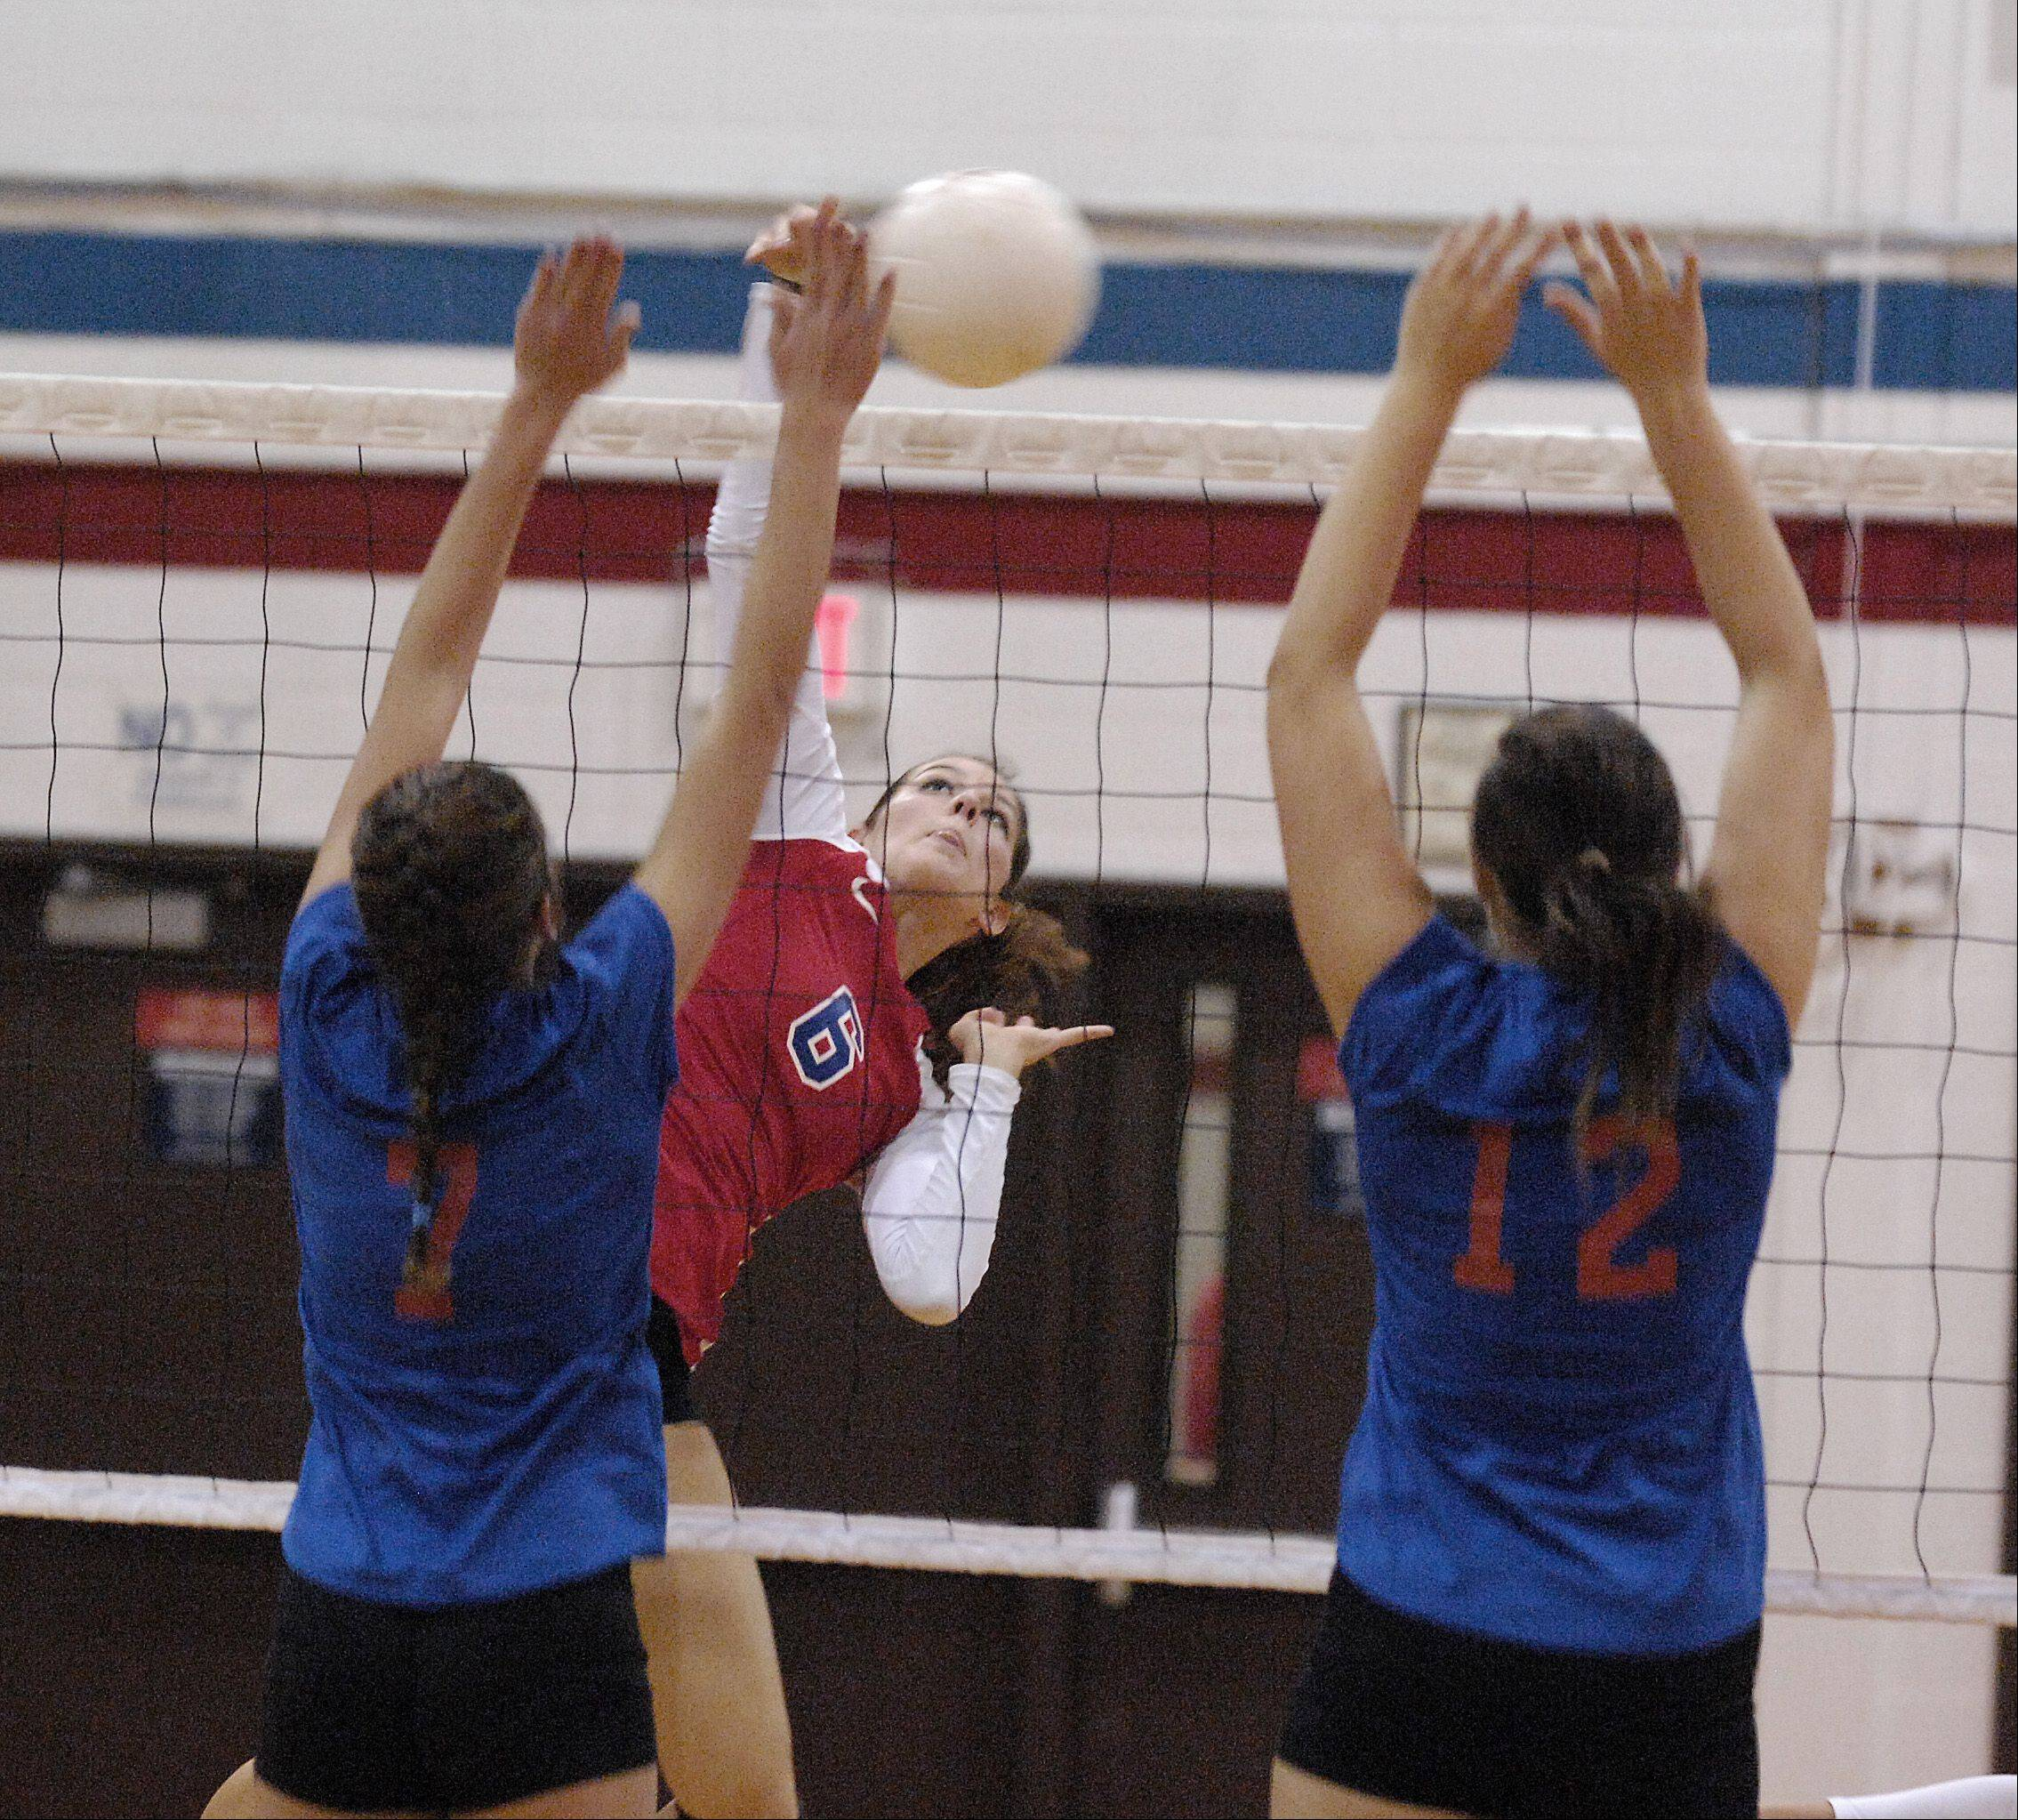 Tarah Valdez, center, and her Glenbard South are off to an 11-1 start including last weekend's West Aurora Invitational championship.